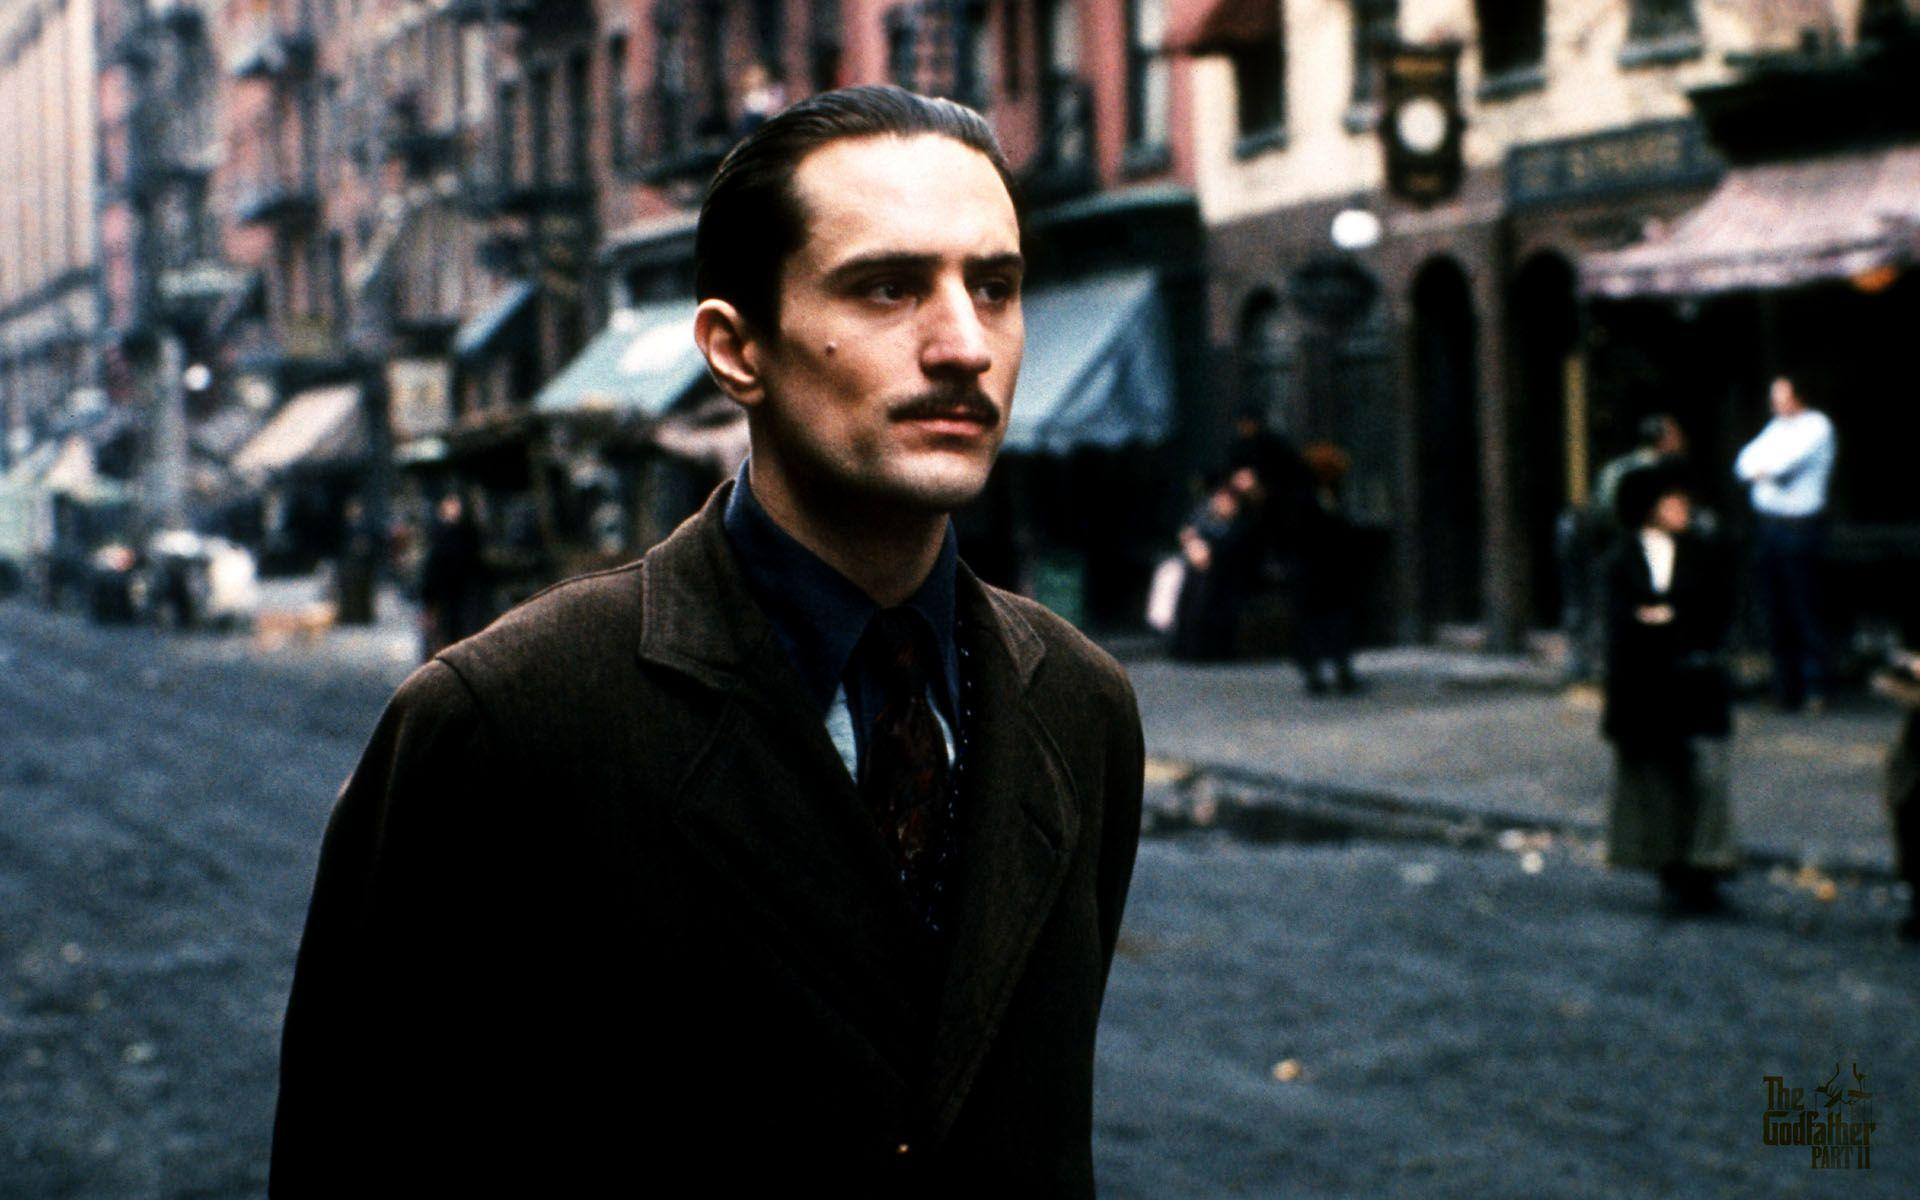 Robert De Niro In The Godfather: Part II HD Wallpapers